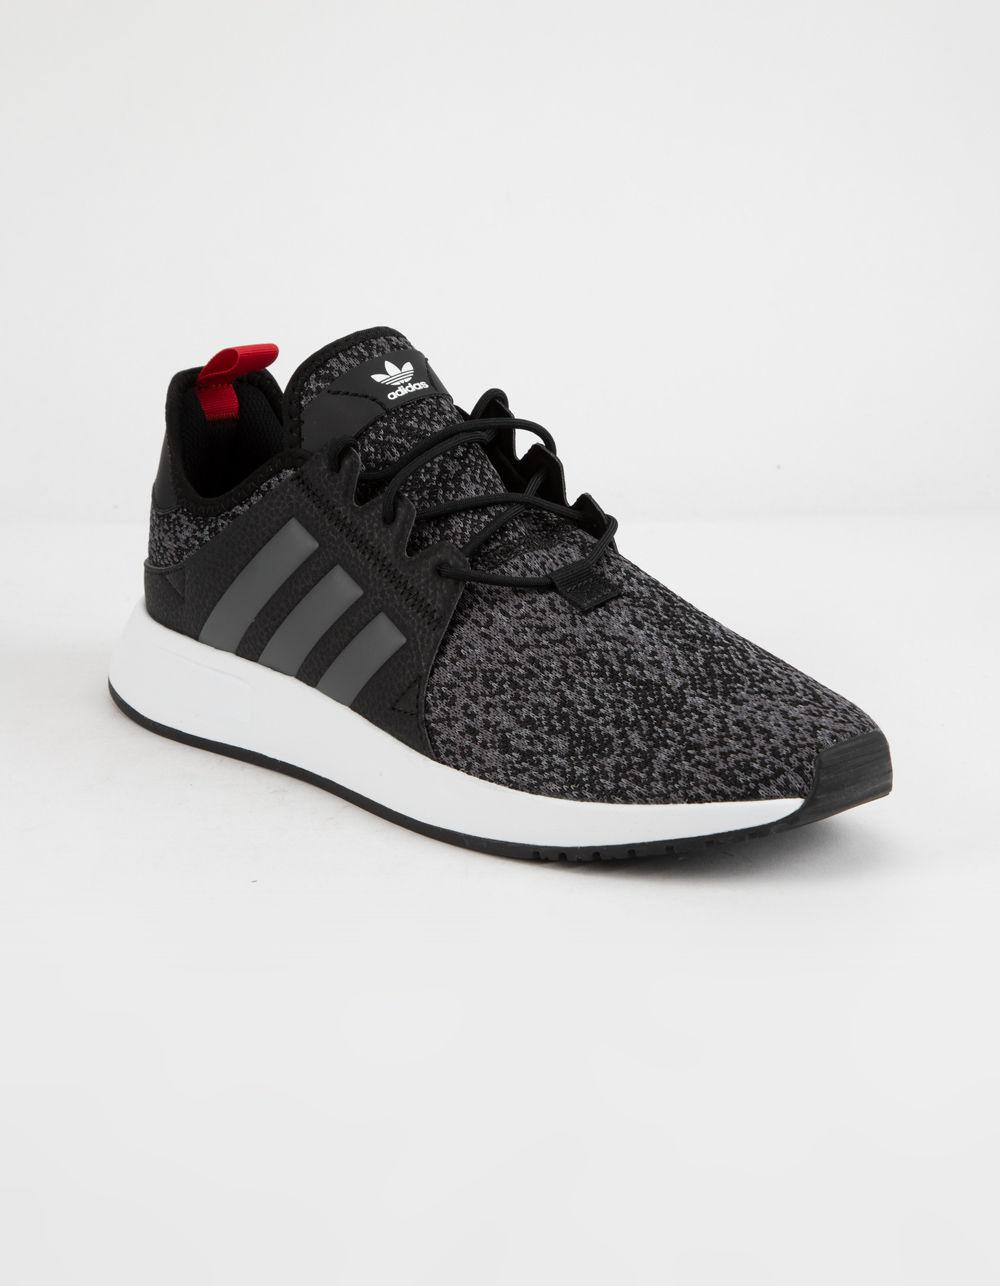 Lyst - adidas X plr Core Black   Gray Shoes in Black a3a7d79fa101